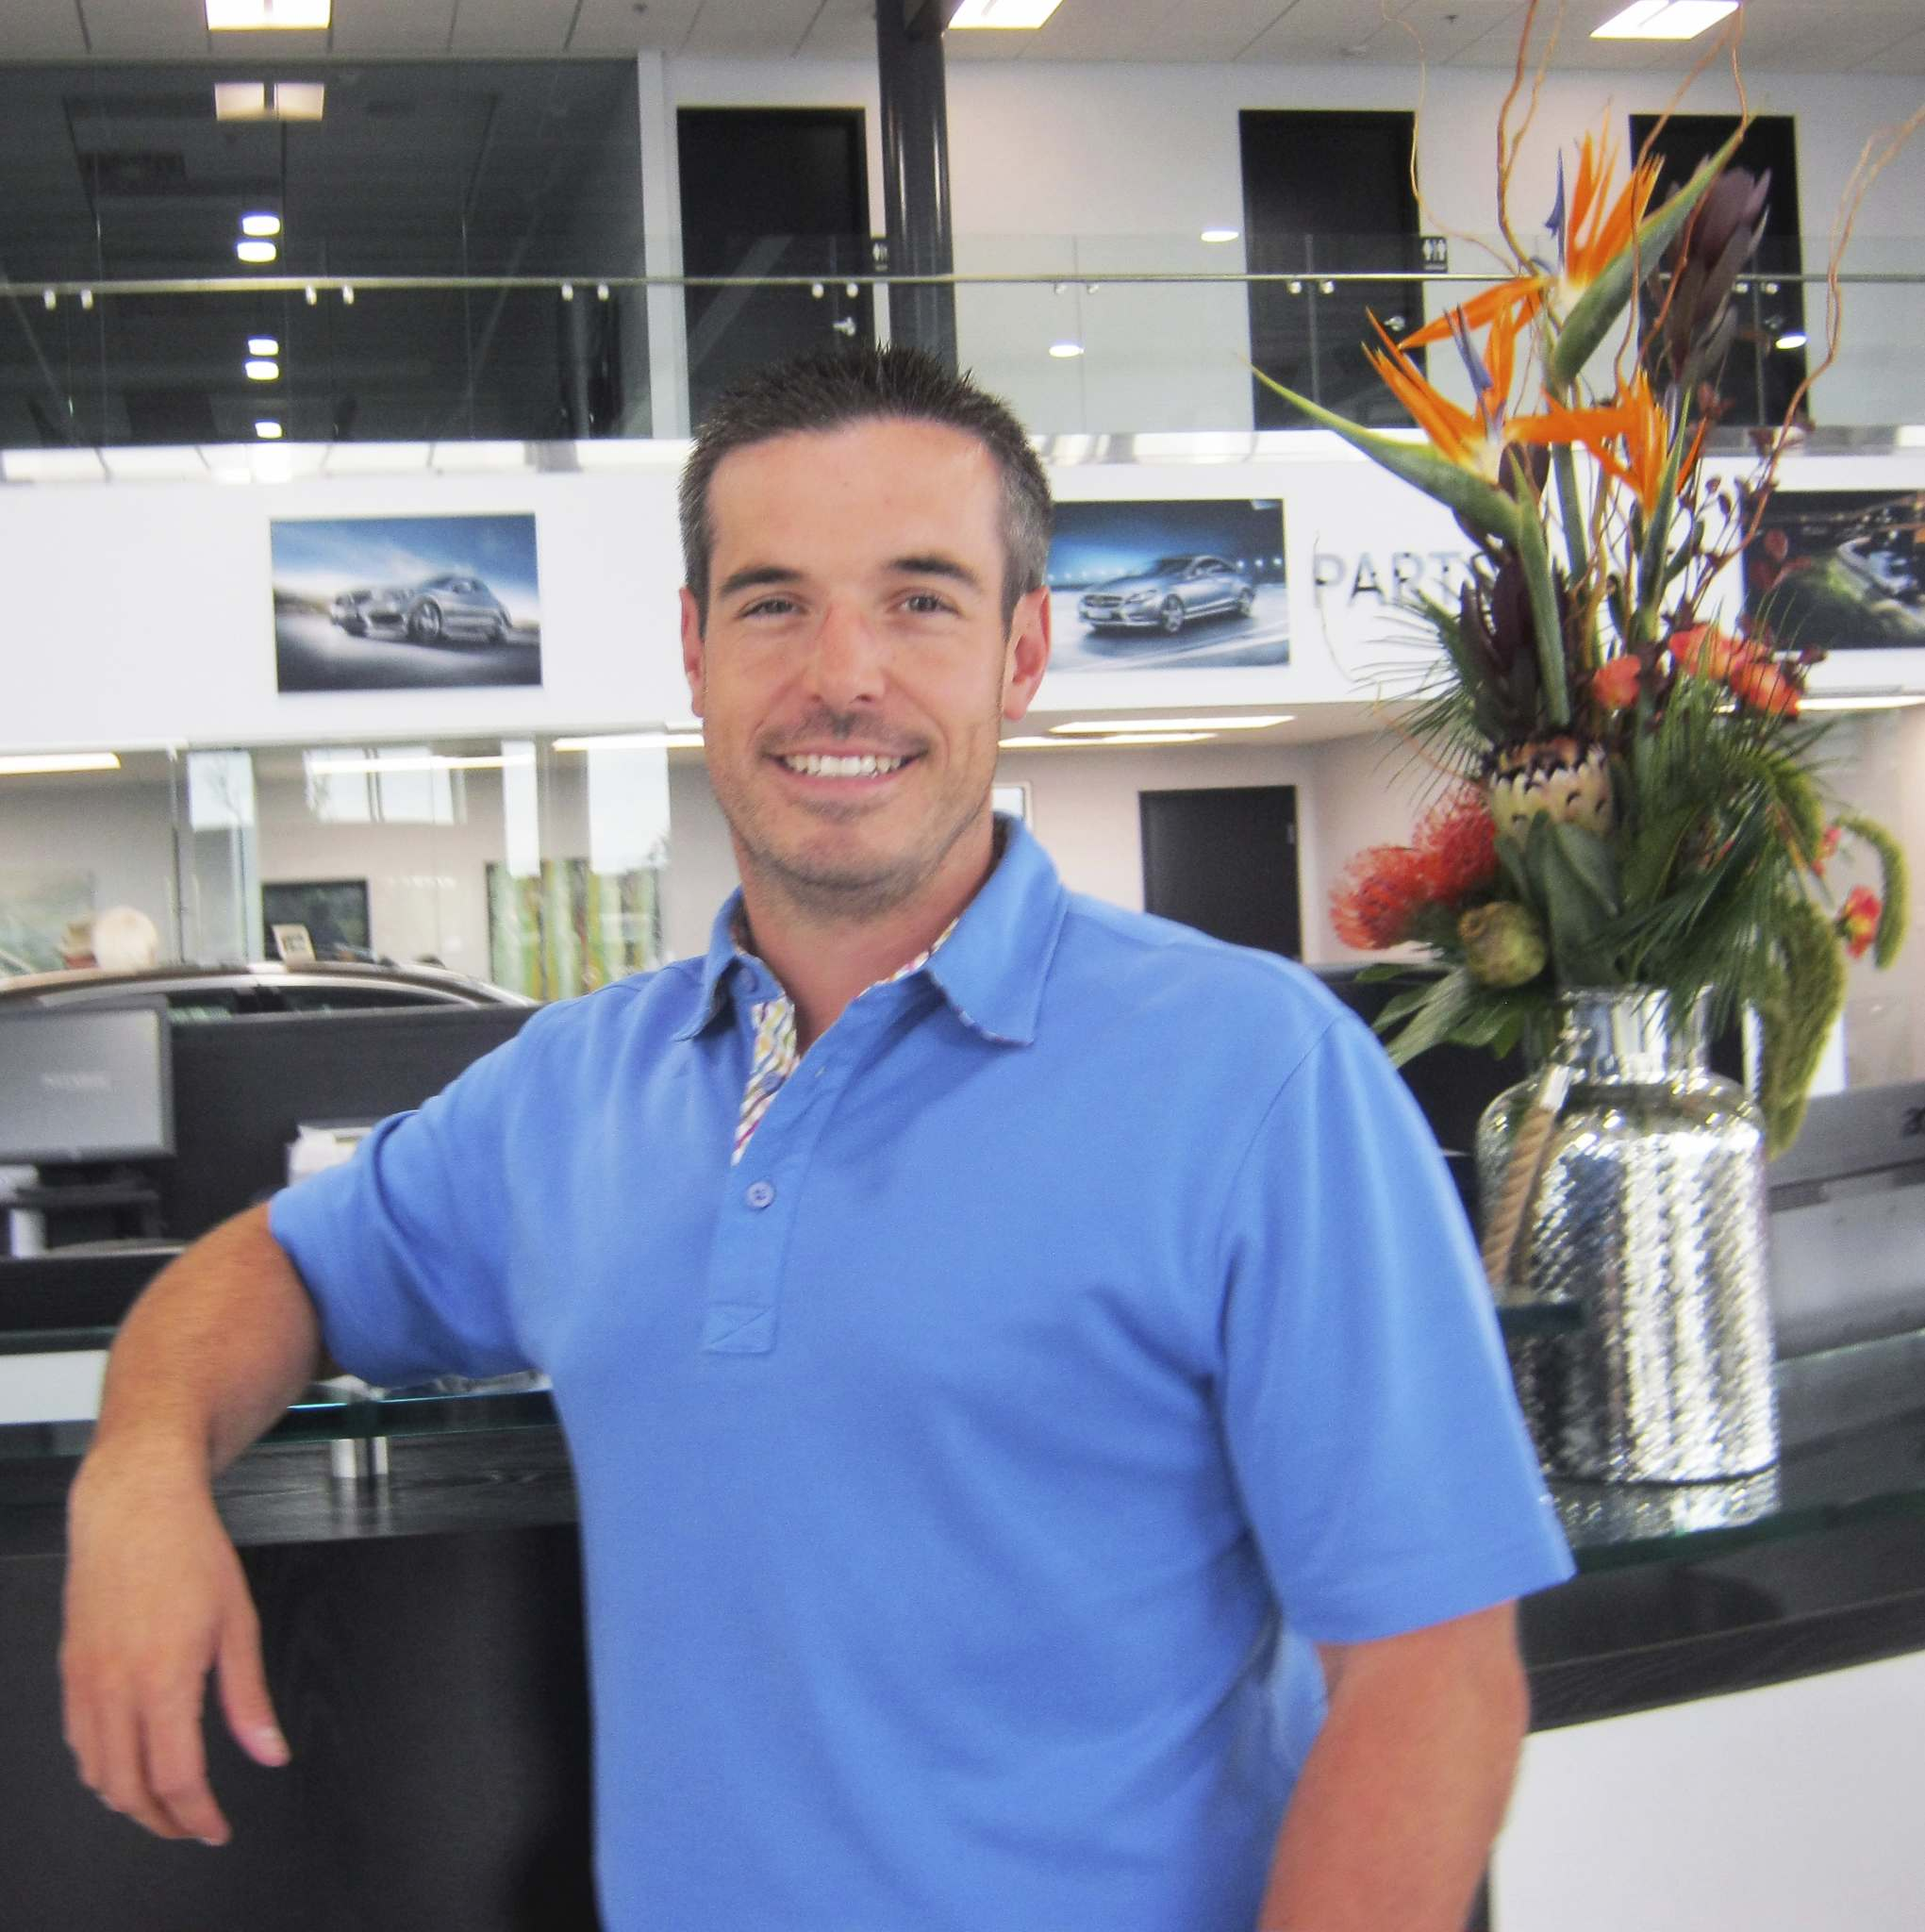 Myron Love / Winnipeg Free PressBrian Lowes, president of Mercedes-Benz Winnipeg, is the Canadian Automobile Dealers Association 2018 retailer laureate for his outstanding achievement within an individual dealership.